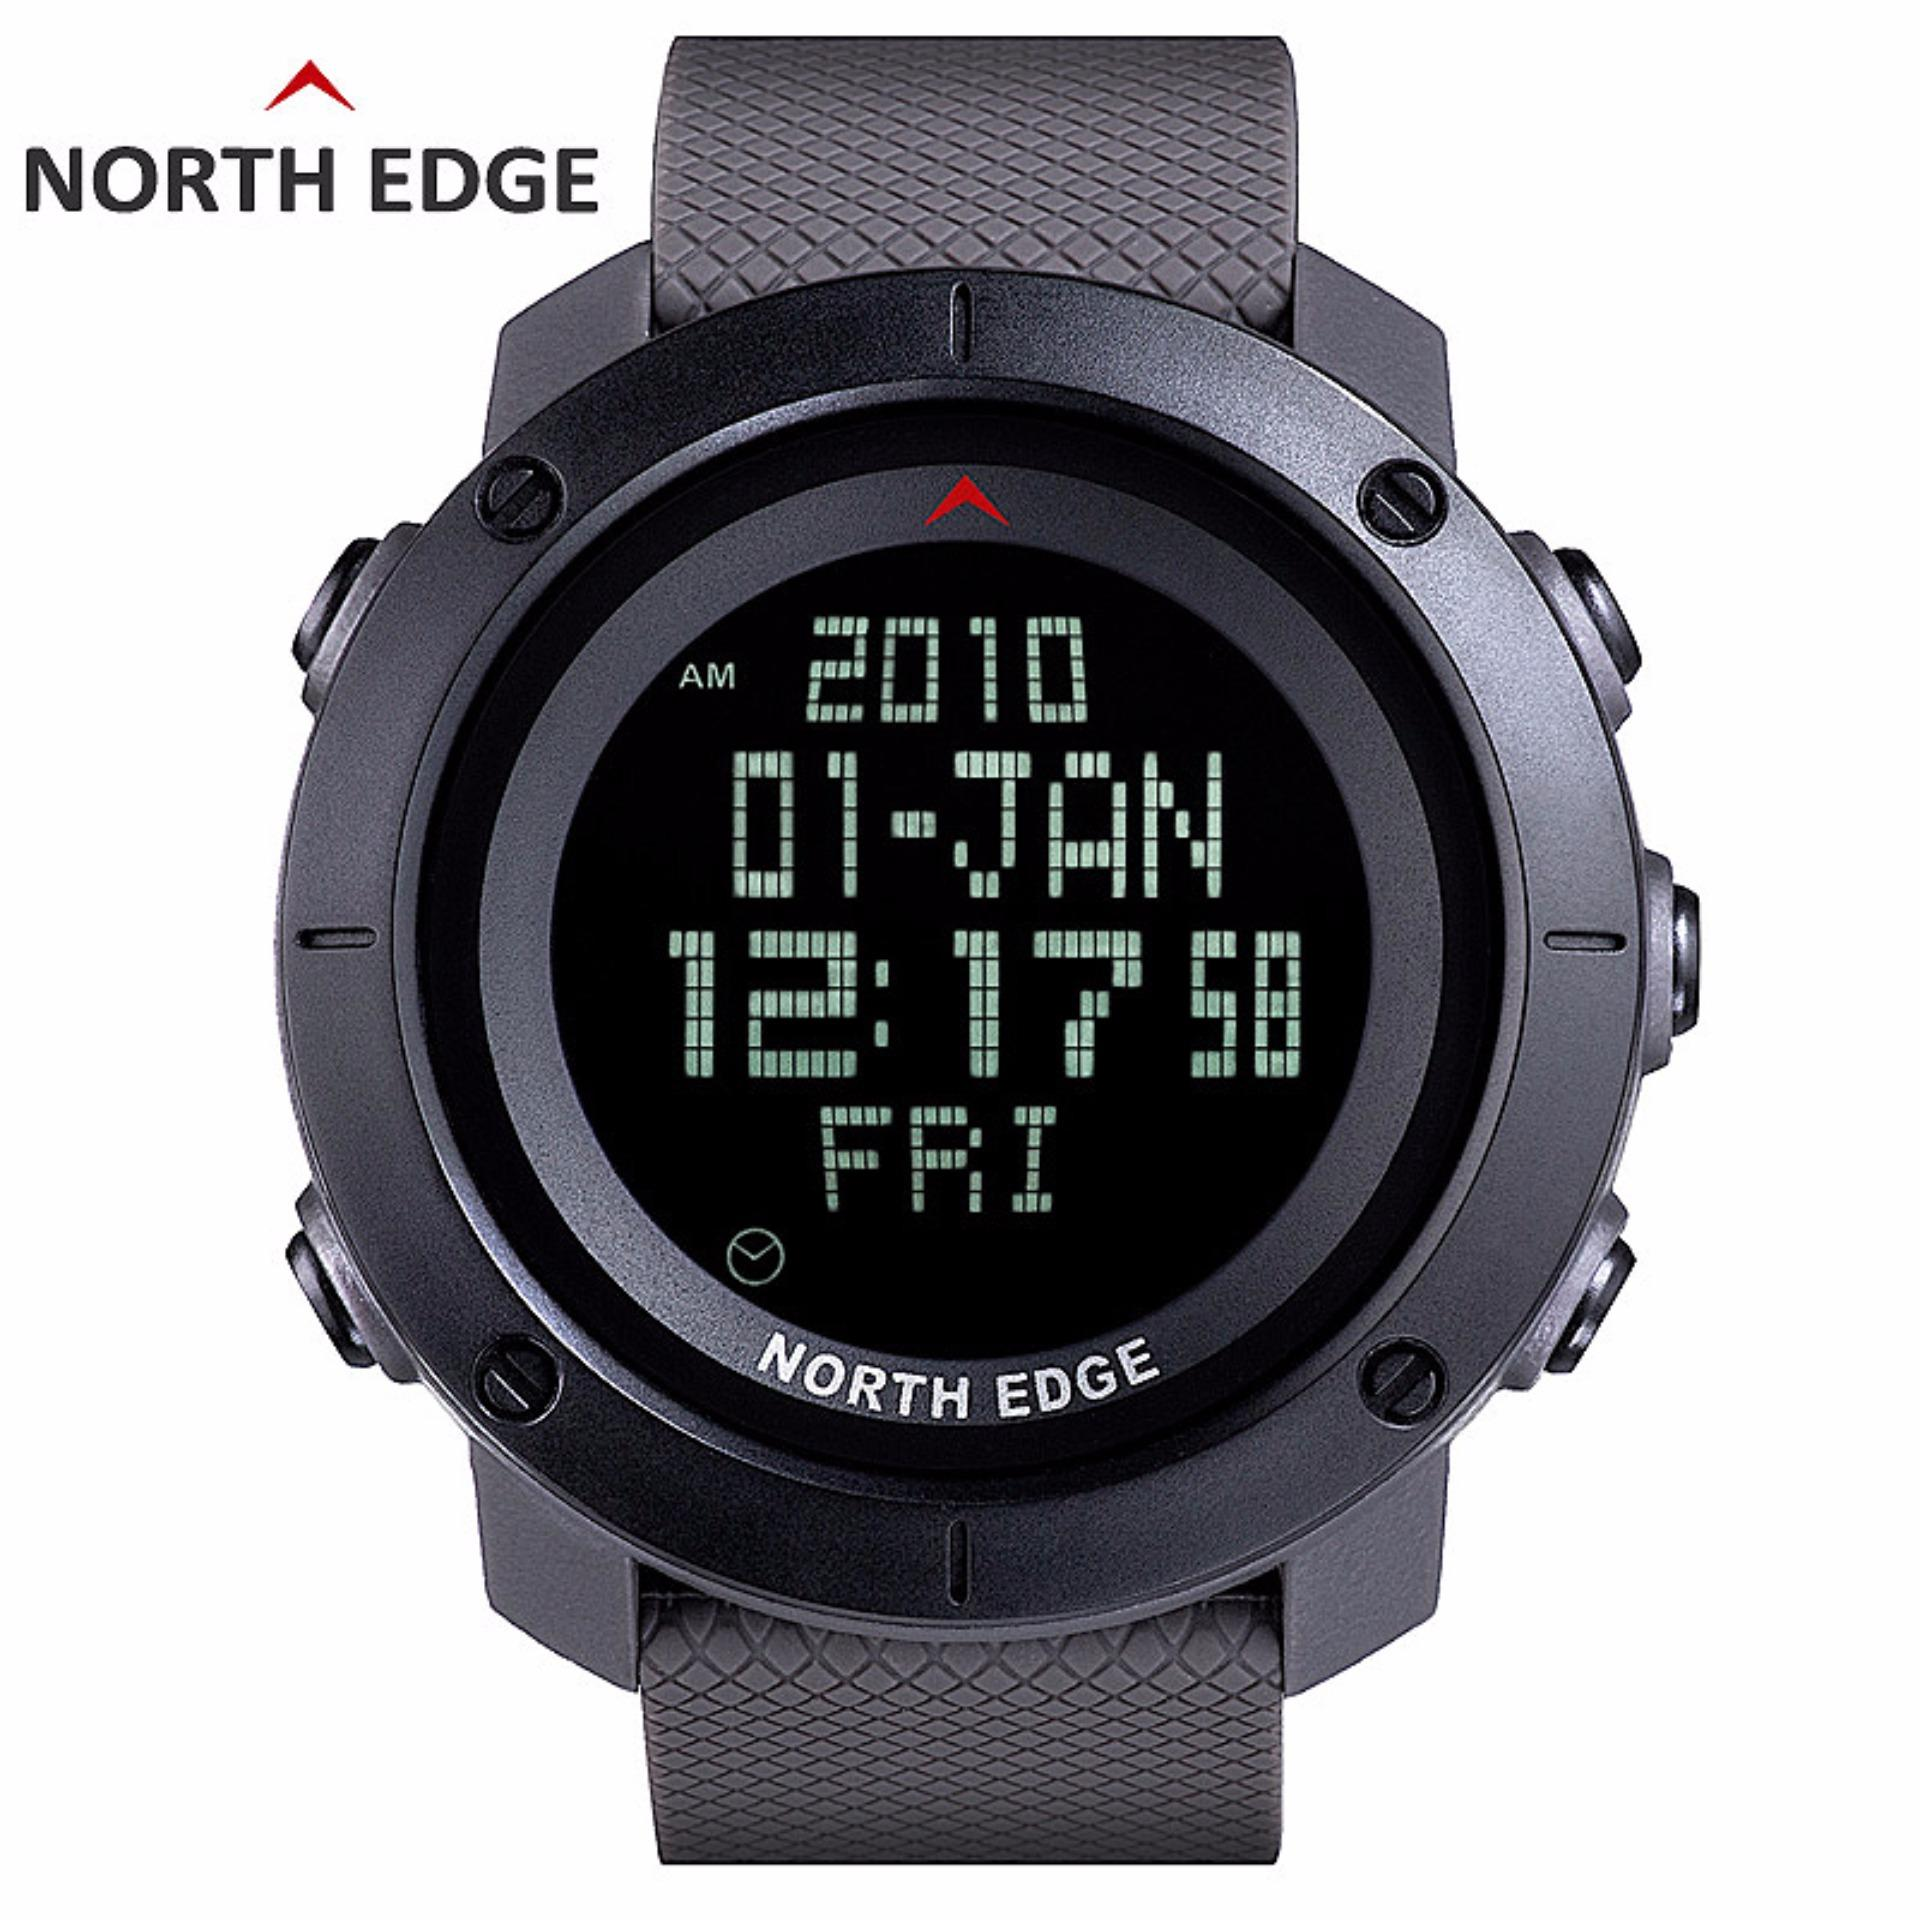 Skmei Smart Watch Bluetooth Sport Jam Tangan Olah Raga Black Page Pria Digital 1316 Water Resistant 50m Source Harga 1025 Olahraga Titanium Koleksi